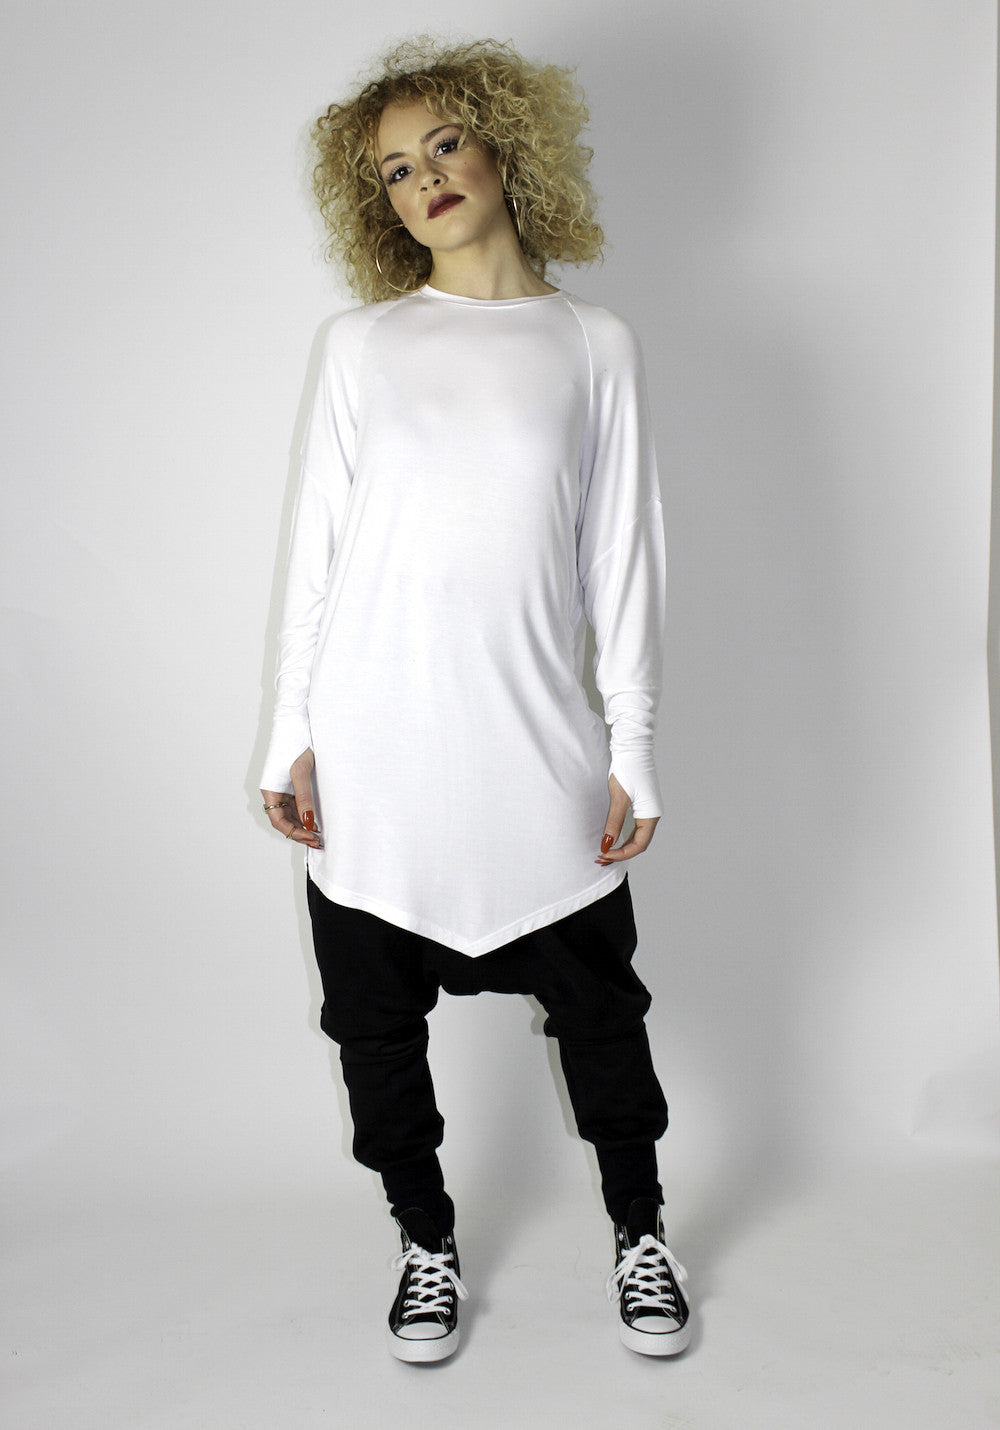 DREWSKI BY HEENY - Dagger Longsleeve Tee - White - •ÈÀOversized longsleeve t-shirt with angled front, straight seemed back and raglan cut sleeve